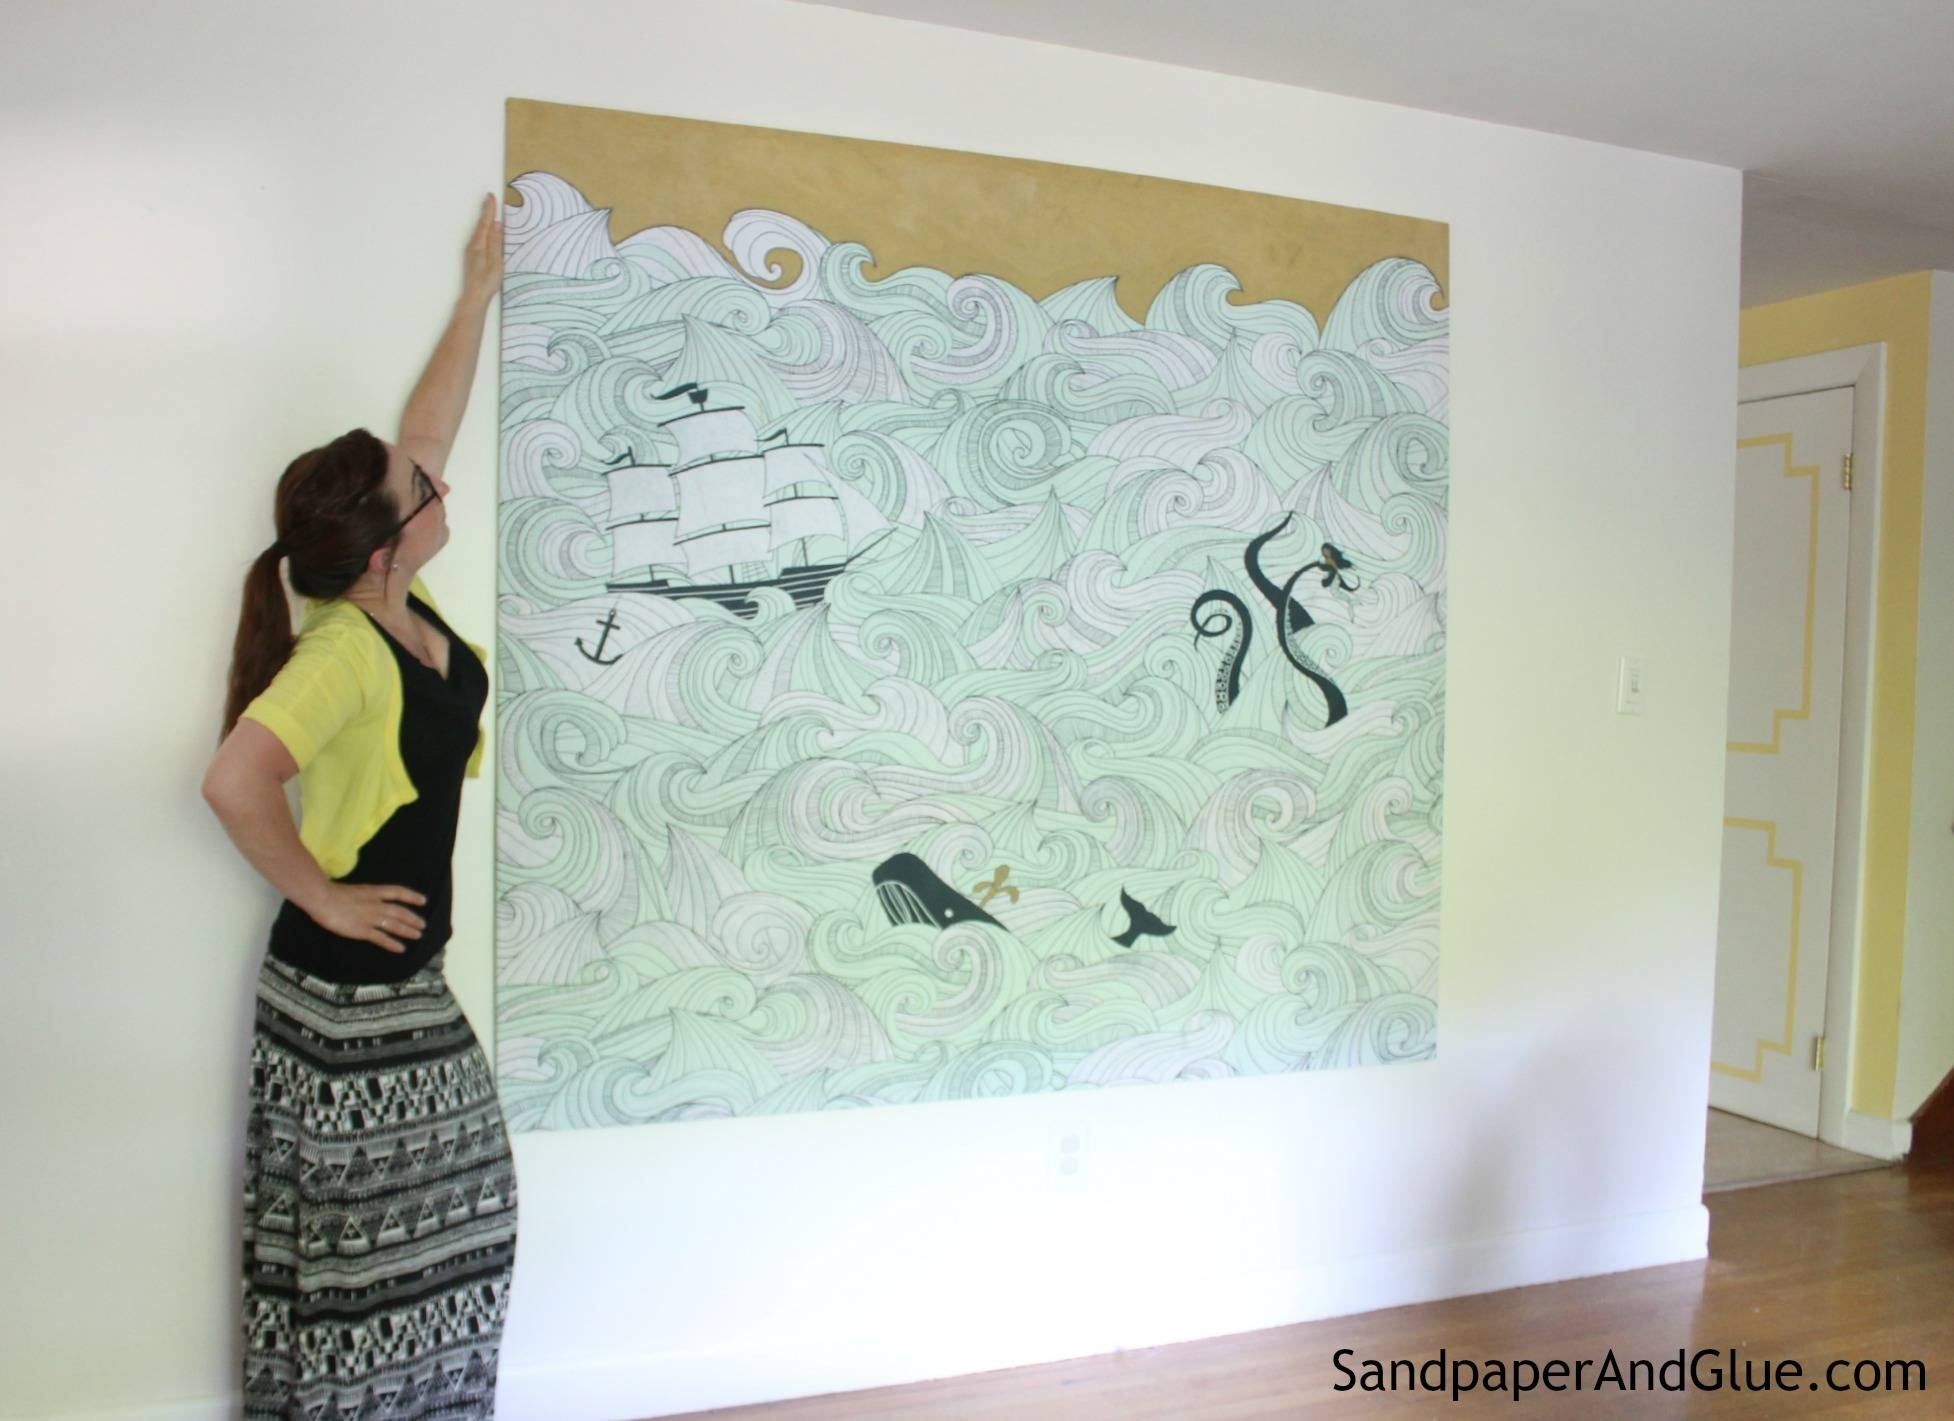 Diy Stretched Fabric Canvas (With A Shower Curtain!) | Stephanie With Most Popular Stretched Fabric Wall Art (View 10 of 20)